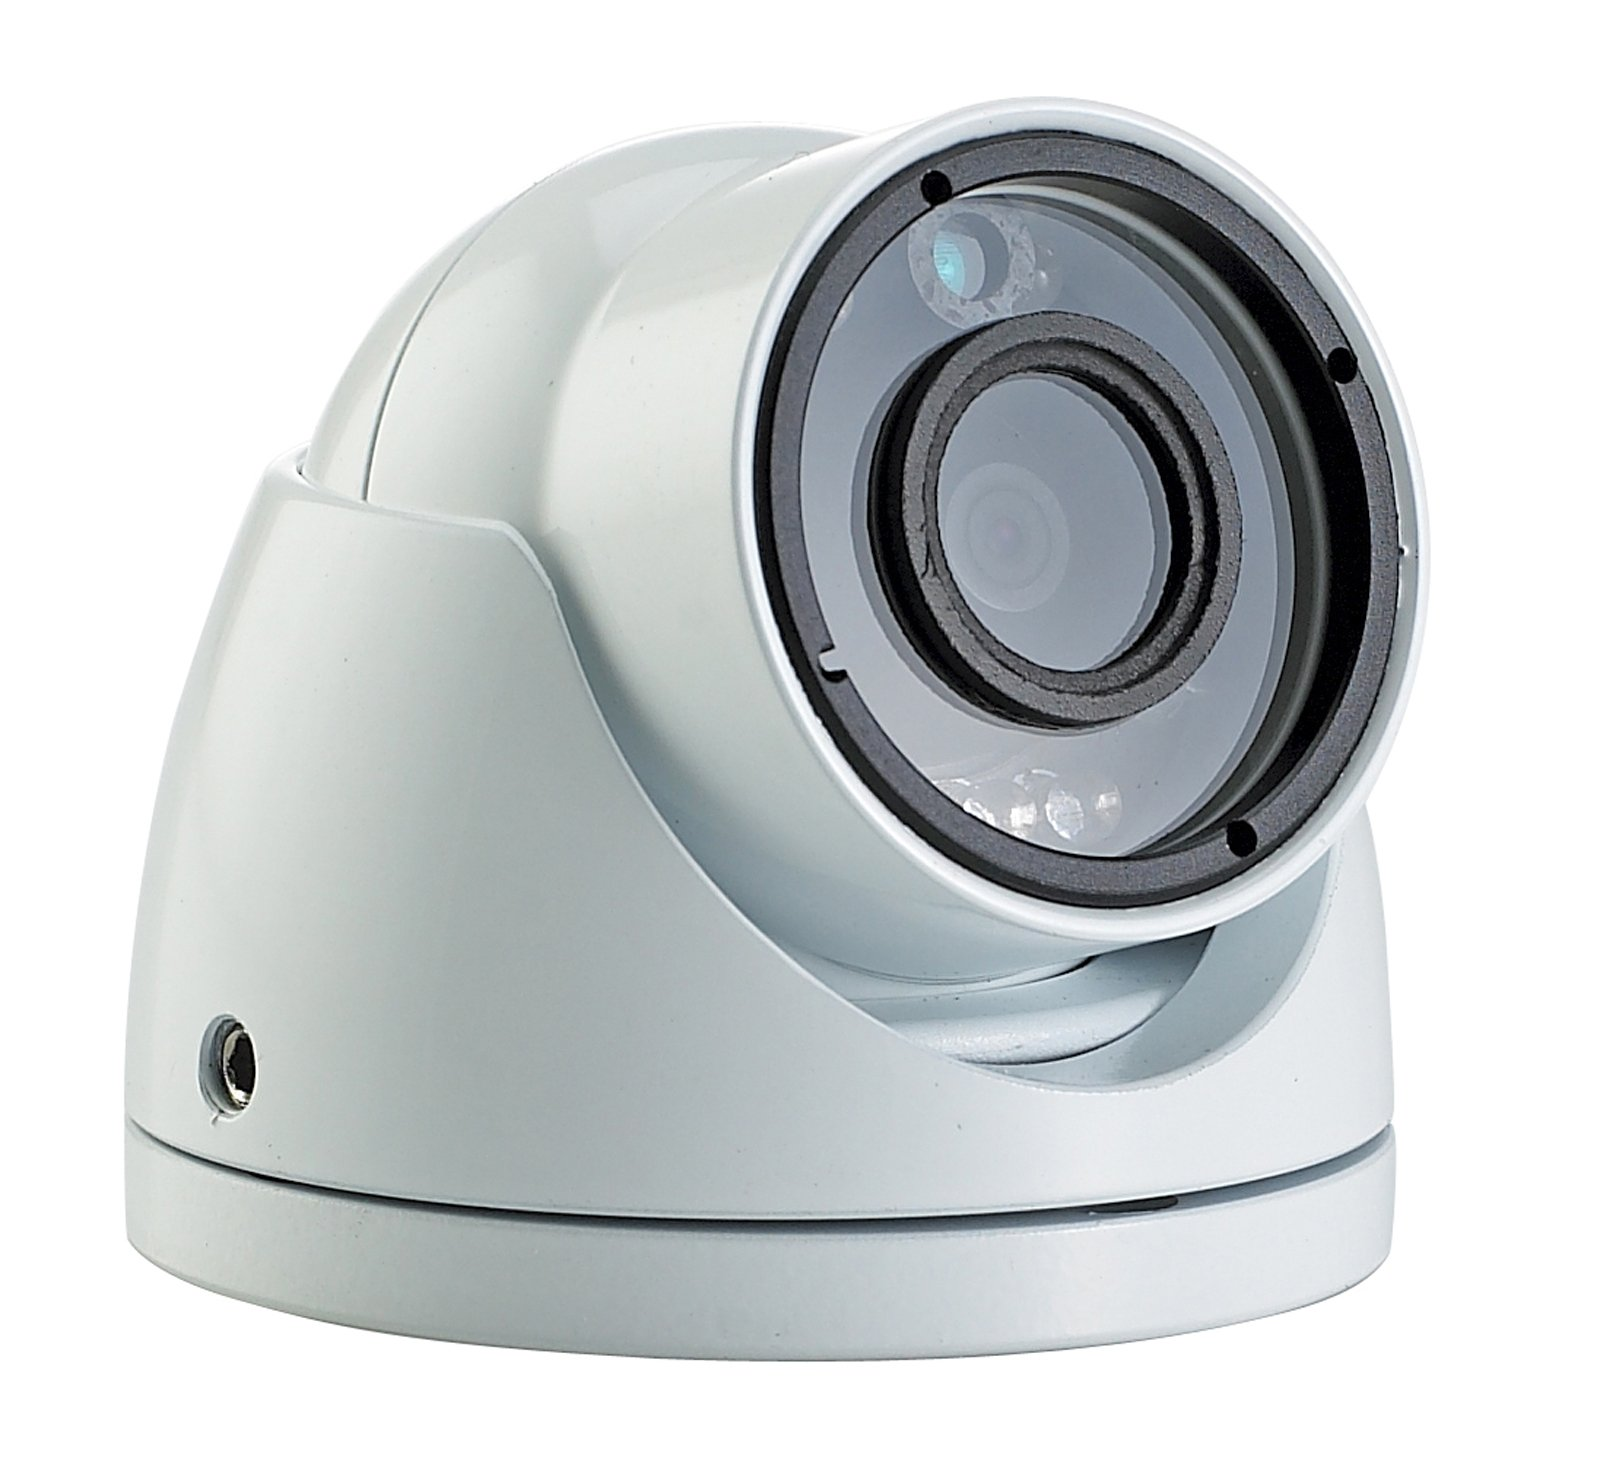 BOYO VTD200MA Mini Armor Dome Camera by Boyo